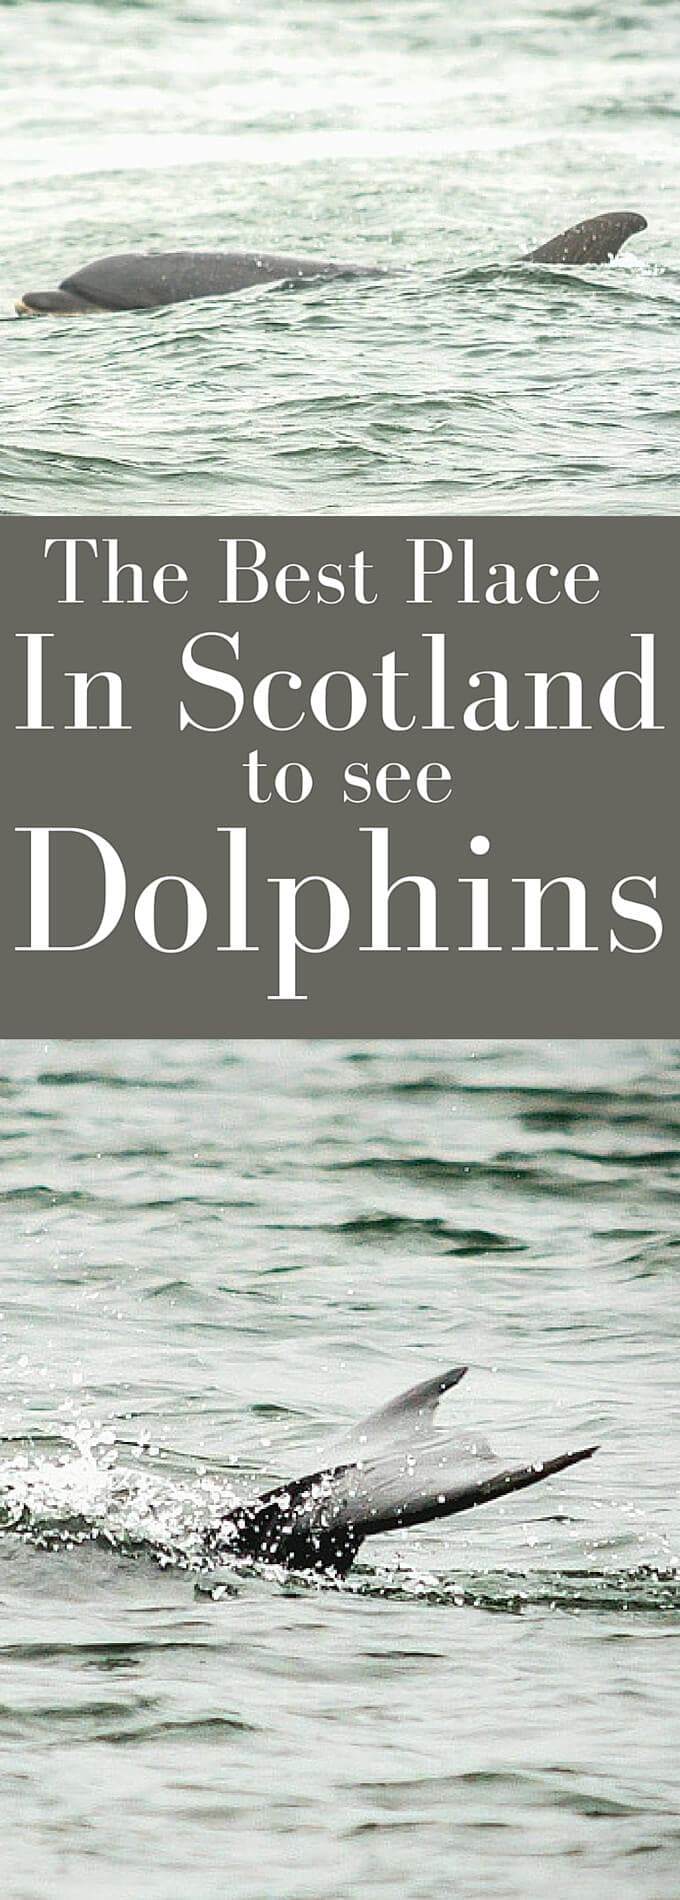 The best place to watch Dolphins in Scotland is at Chanonry Point in the Moray Firth. Read my post to get ALL the details you need to make sure you have the best chance of seeing them!